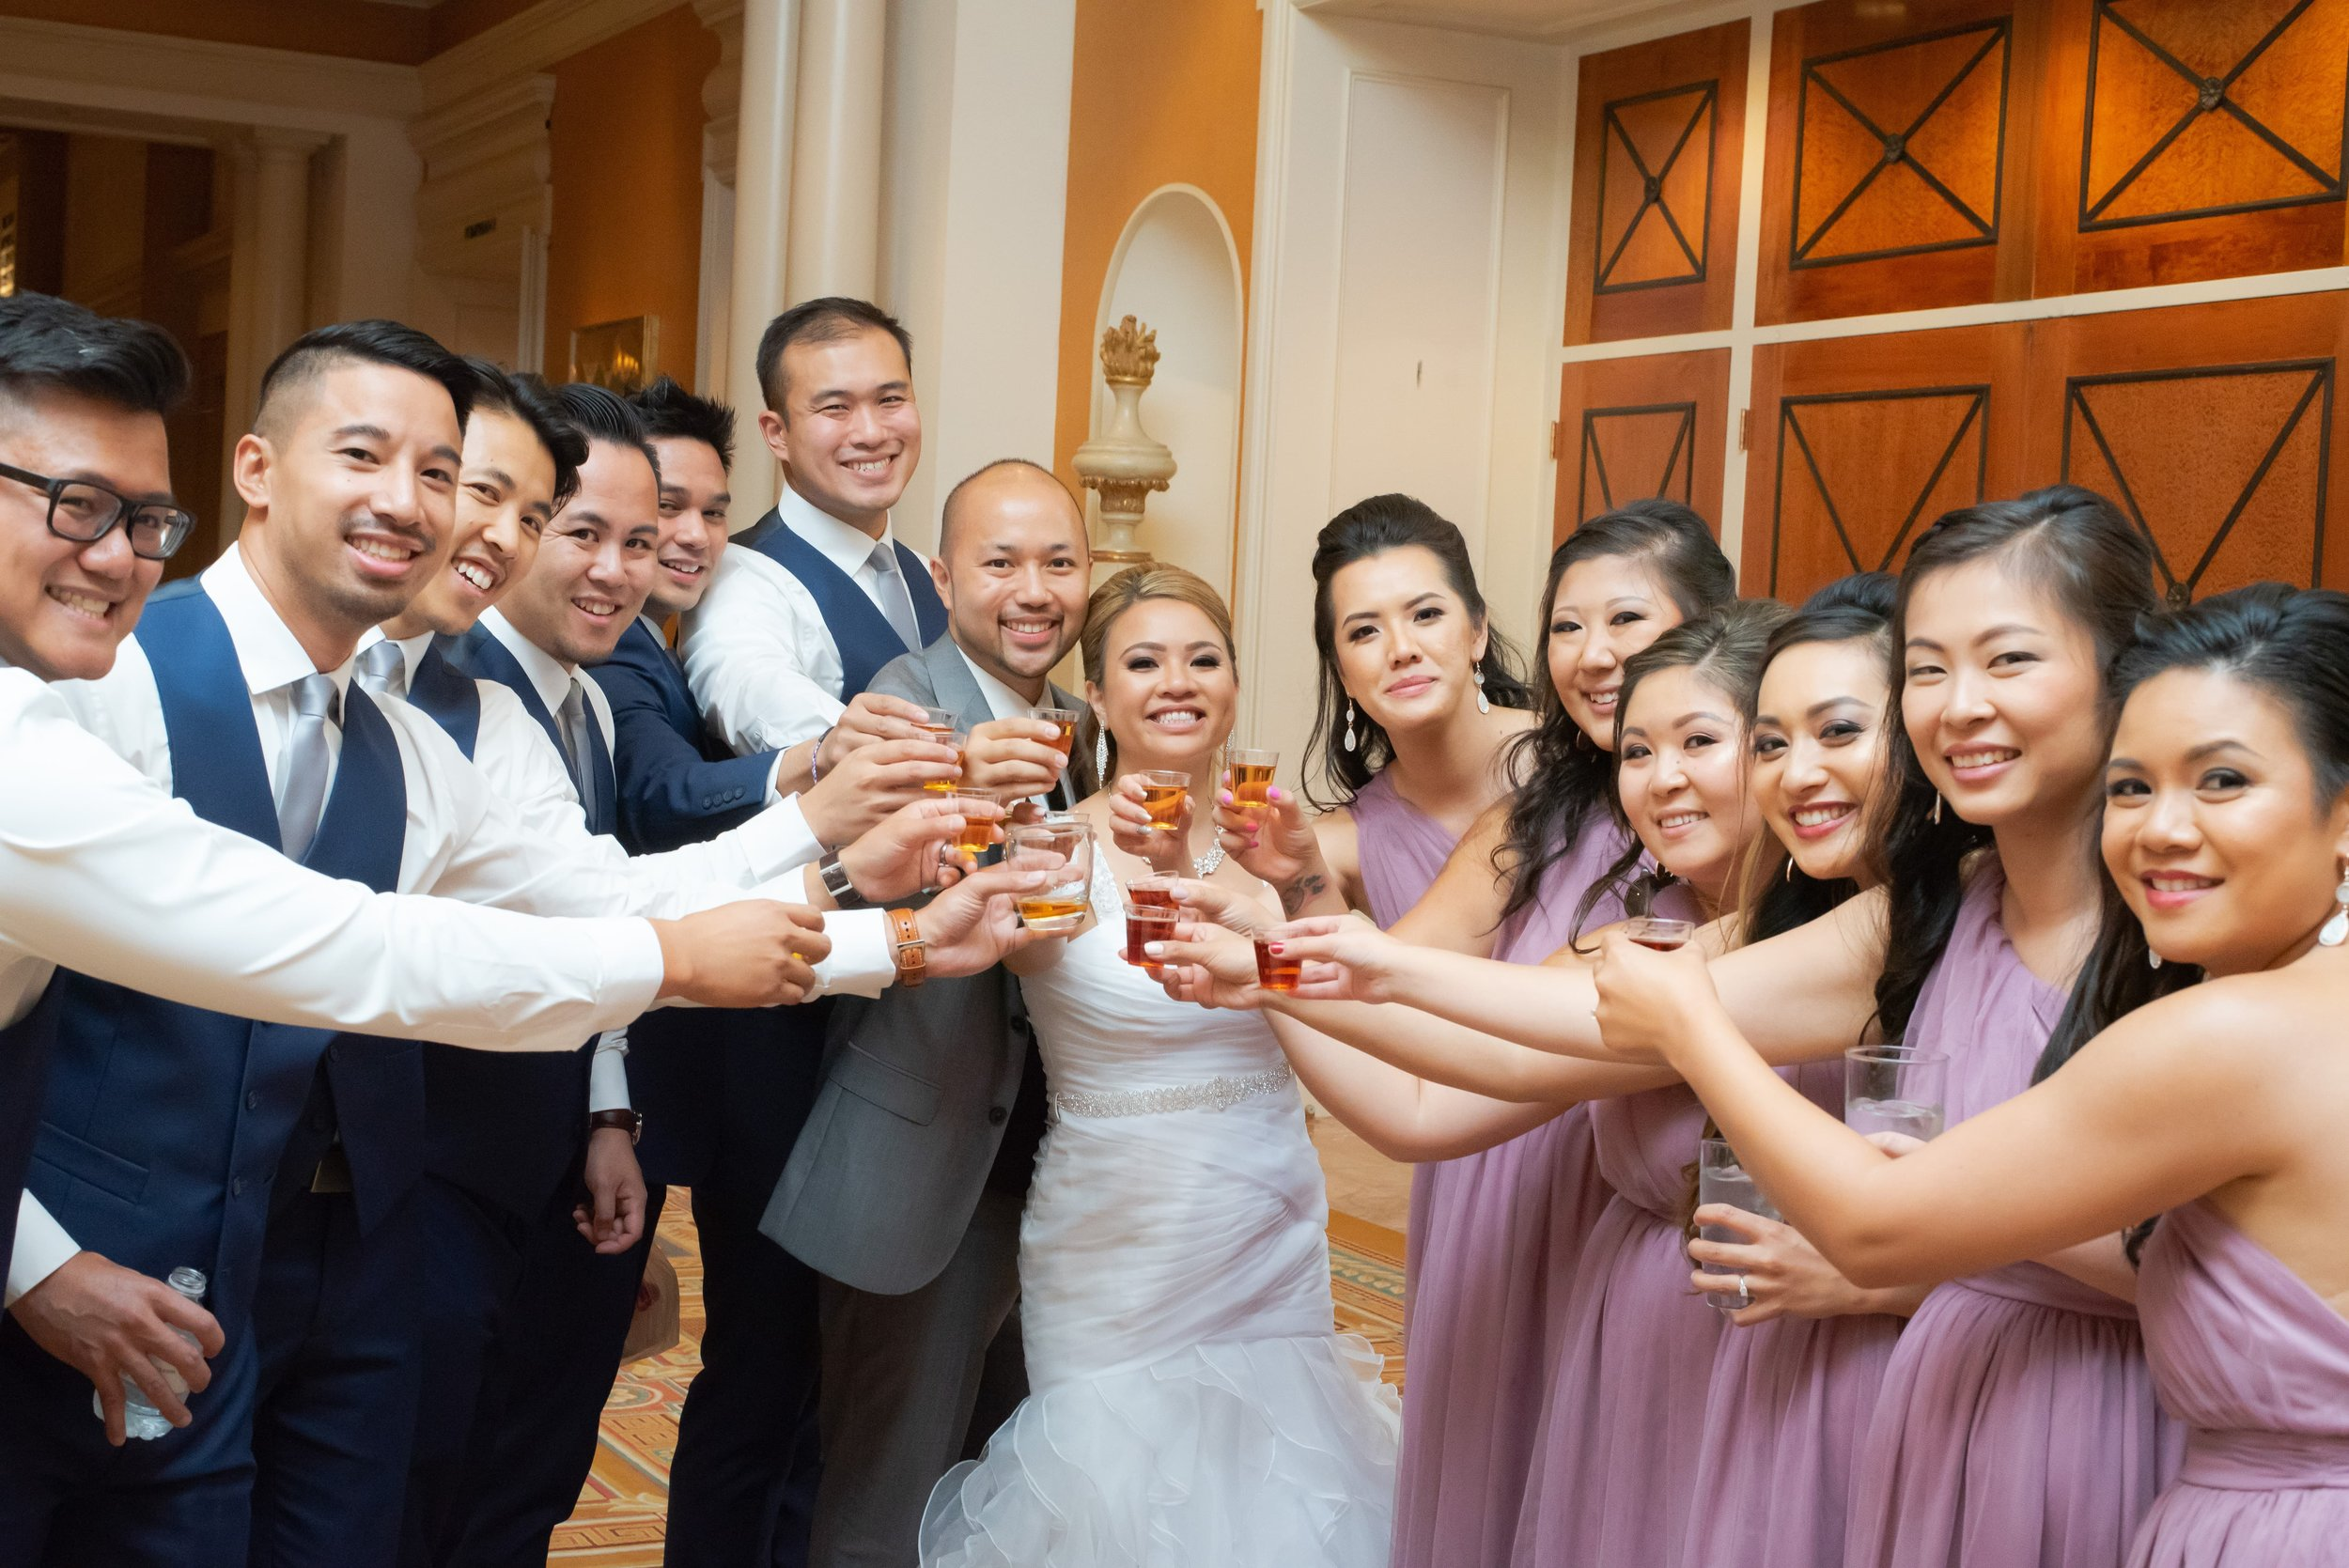 The wedding party toasting while smiling for the camera.